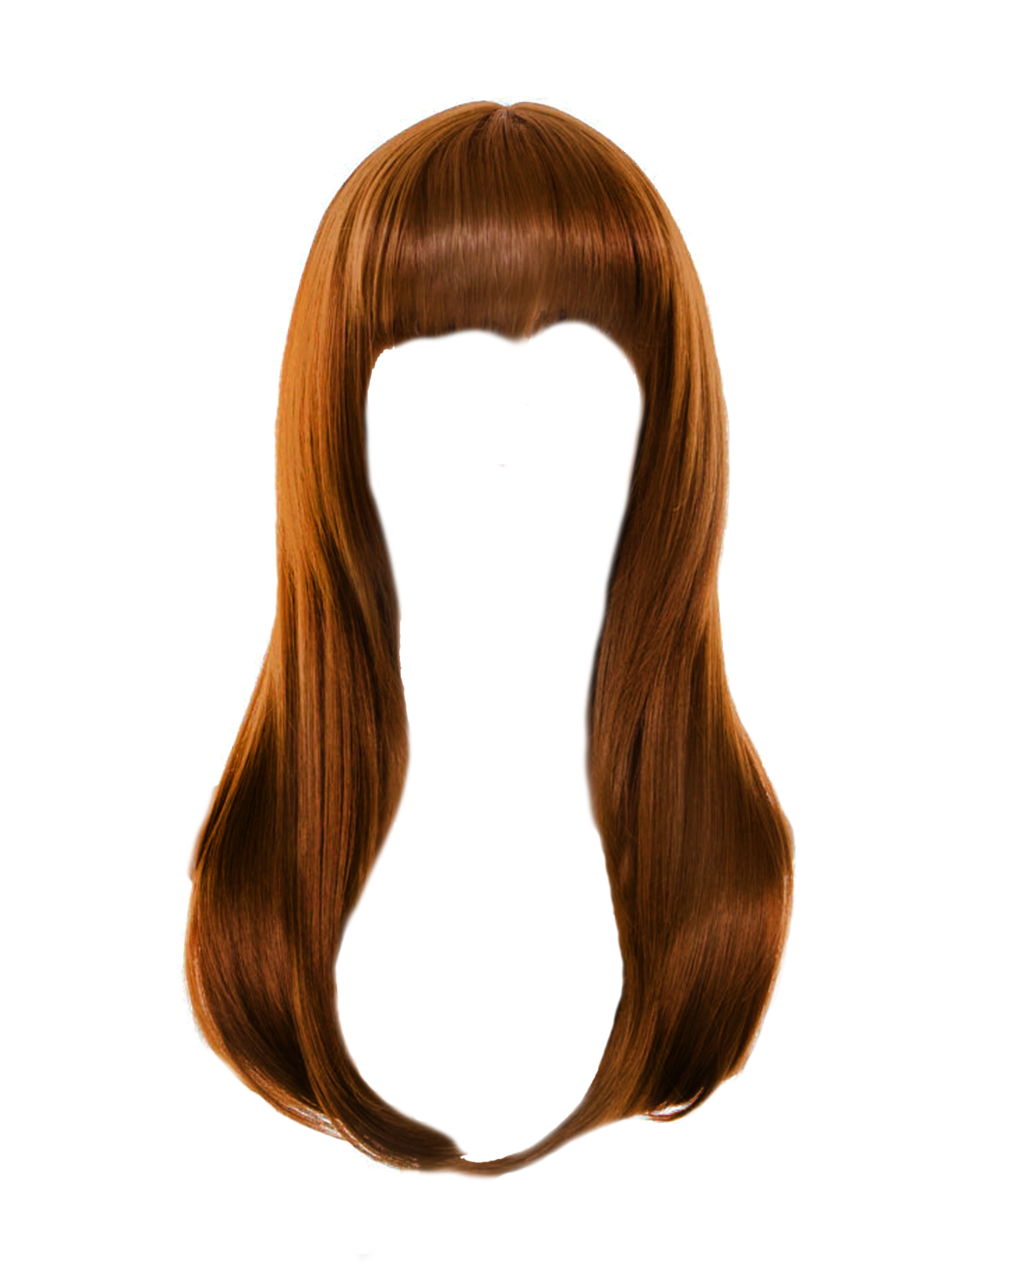 Png Hair 3 by Moonglowlilly - Hairstyles PNG